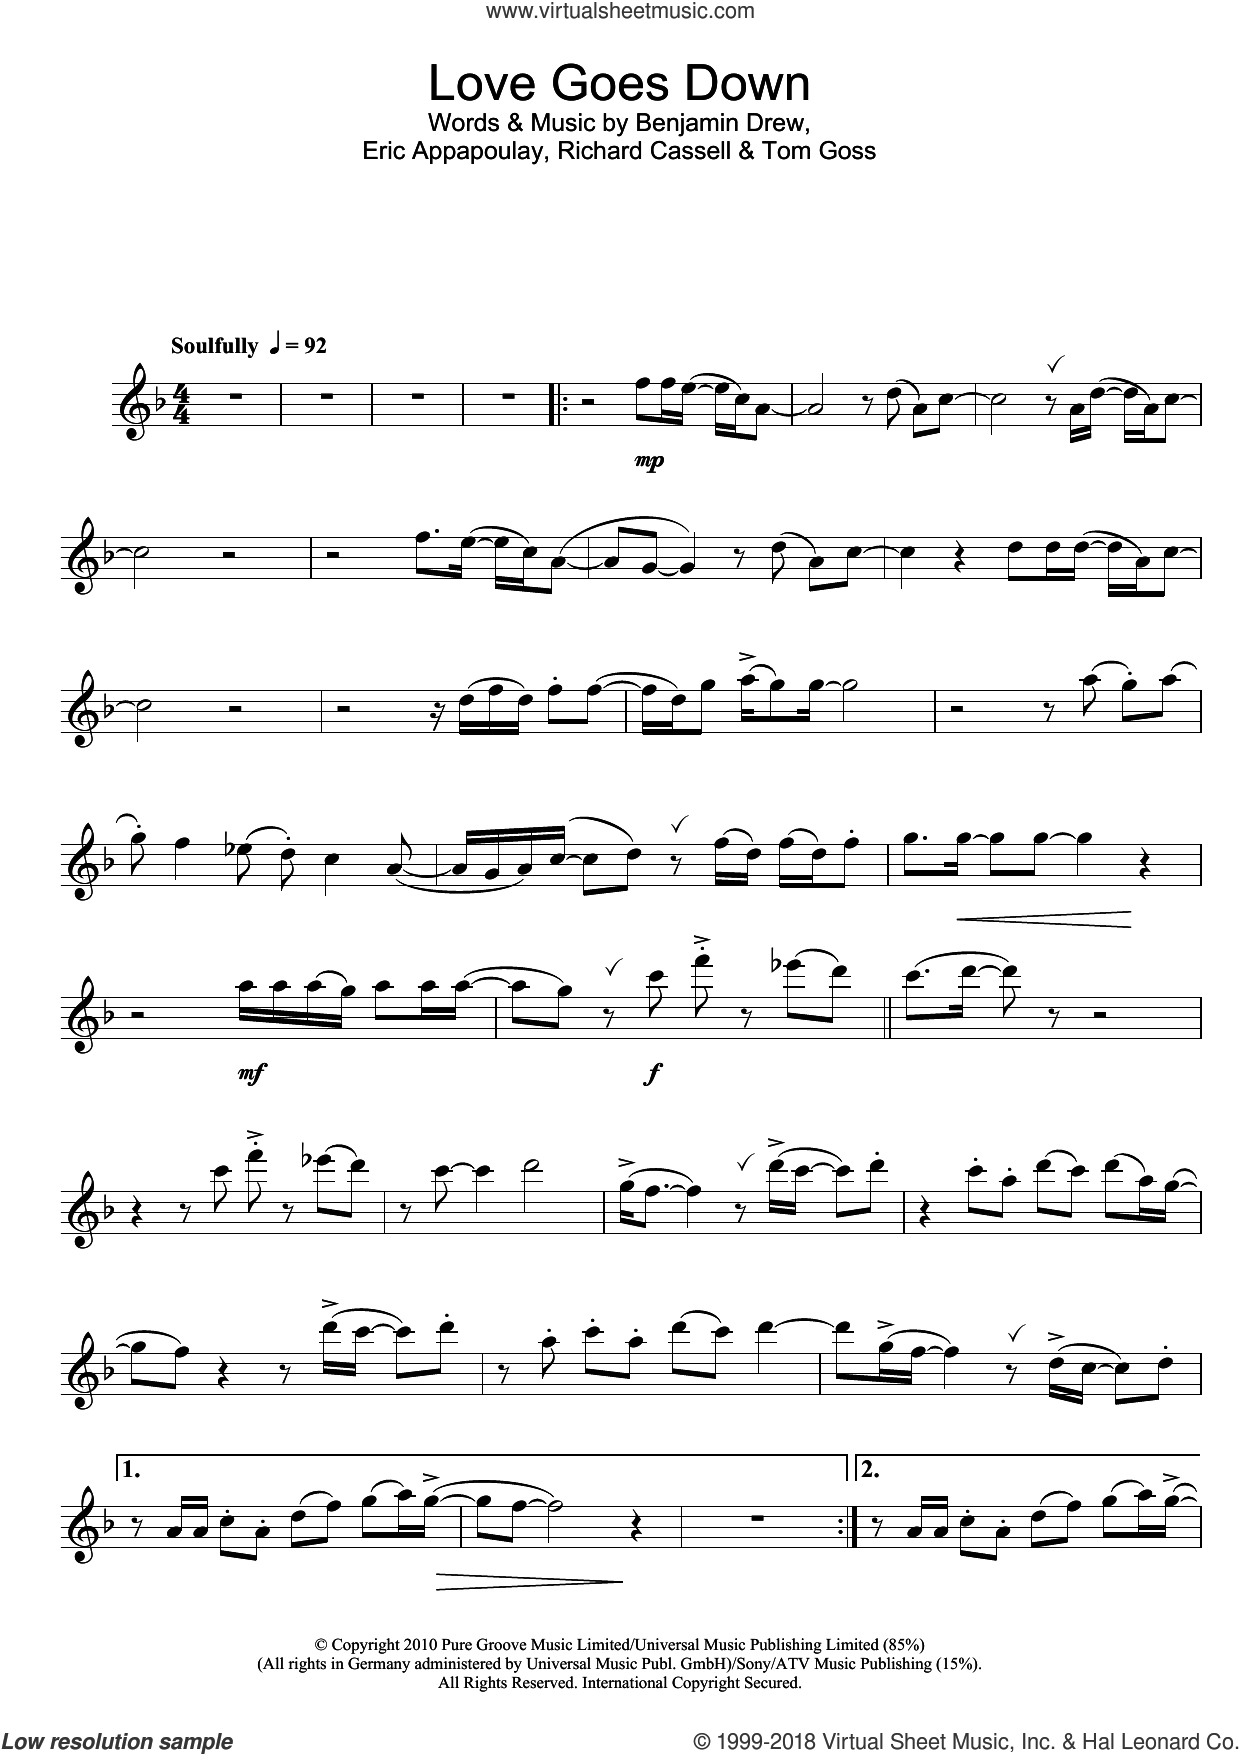 Love Goes Down sheet music for flute solo by Plan B, Ben Drew, Eric Appapoulay, Richard Cassell and Tom Goss, intermediate skill level